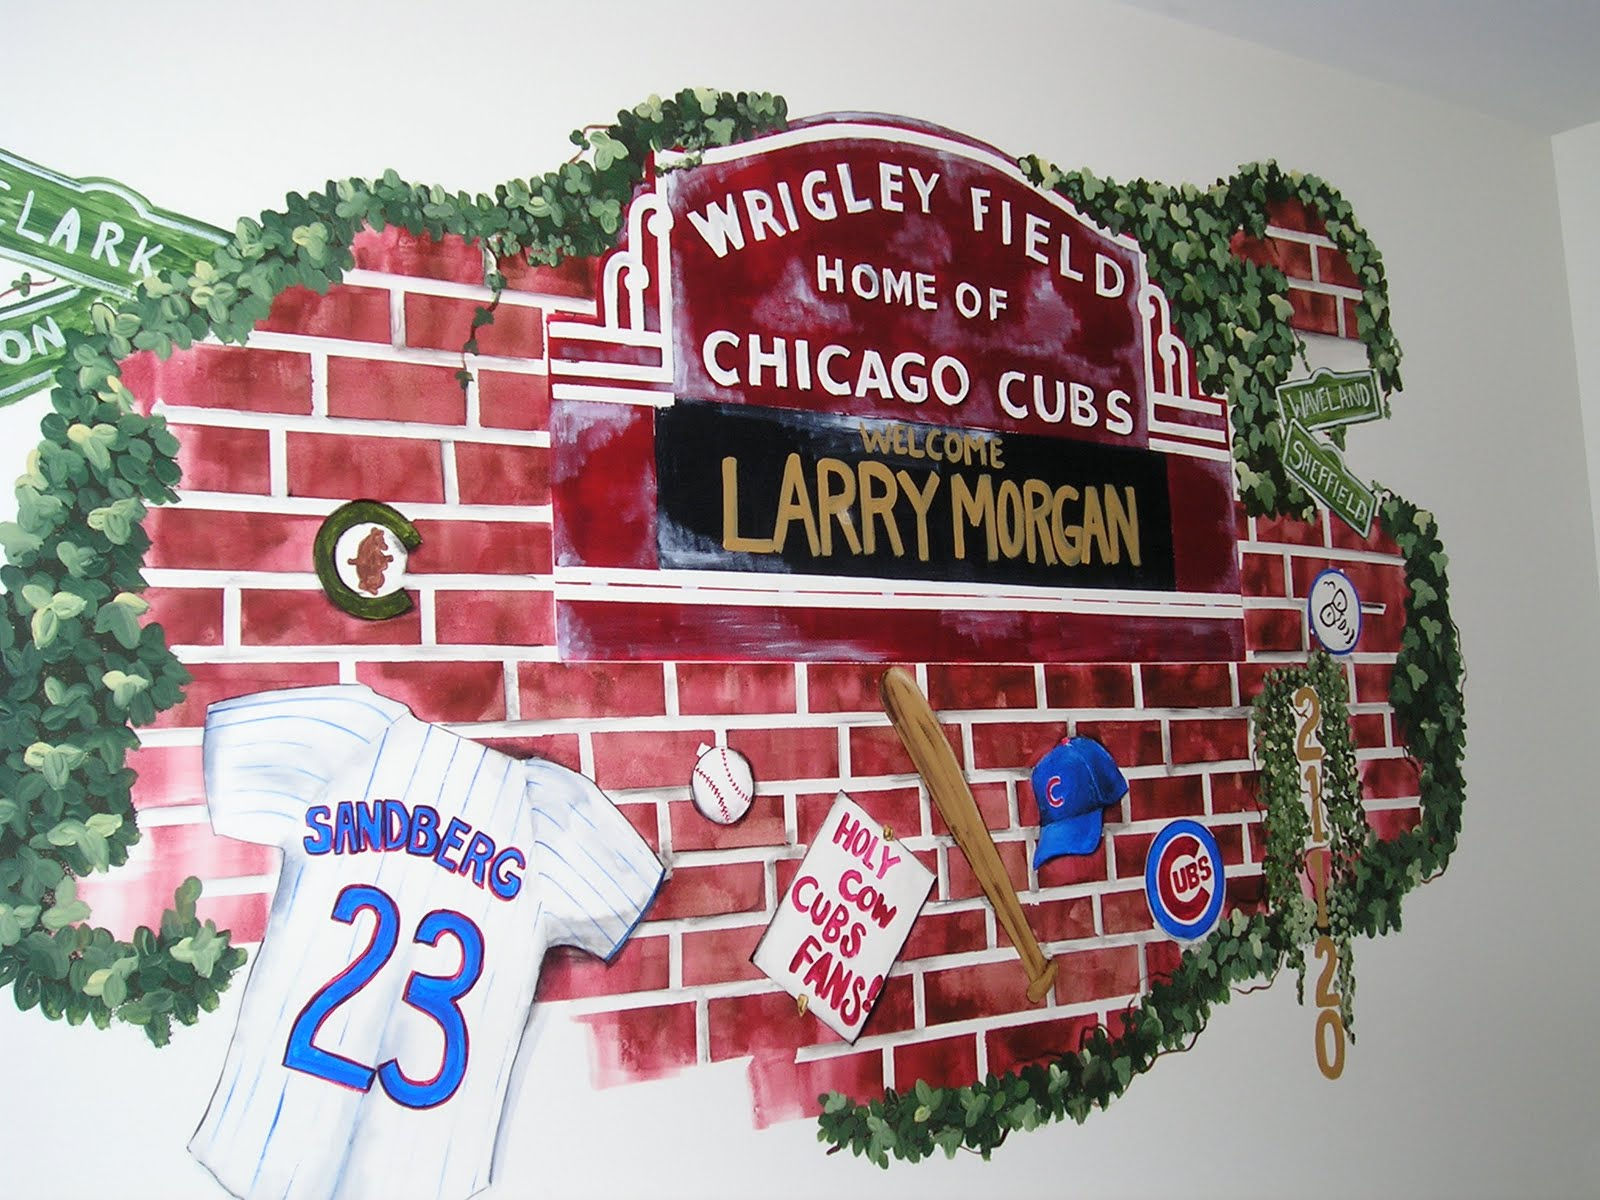 Wrigley field wall mural image collections home wall decoration wrigley field wall mural home design boyu0027s room murals abstract wrigley field photo amipublicfo image collections amipublicfo Gallery